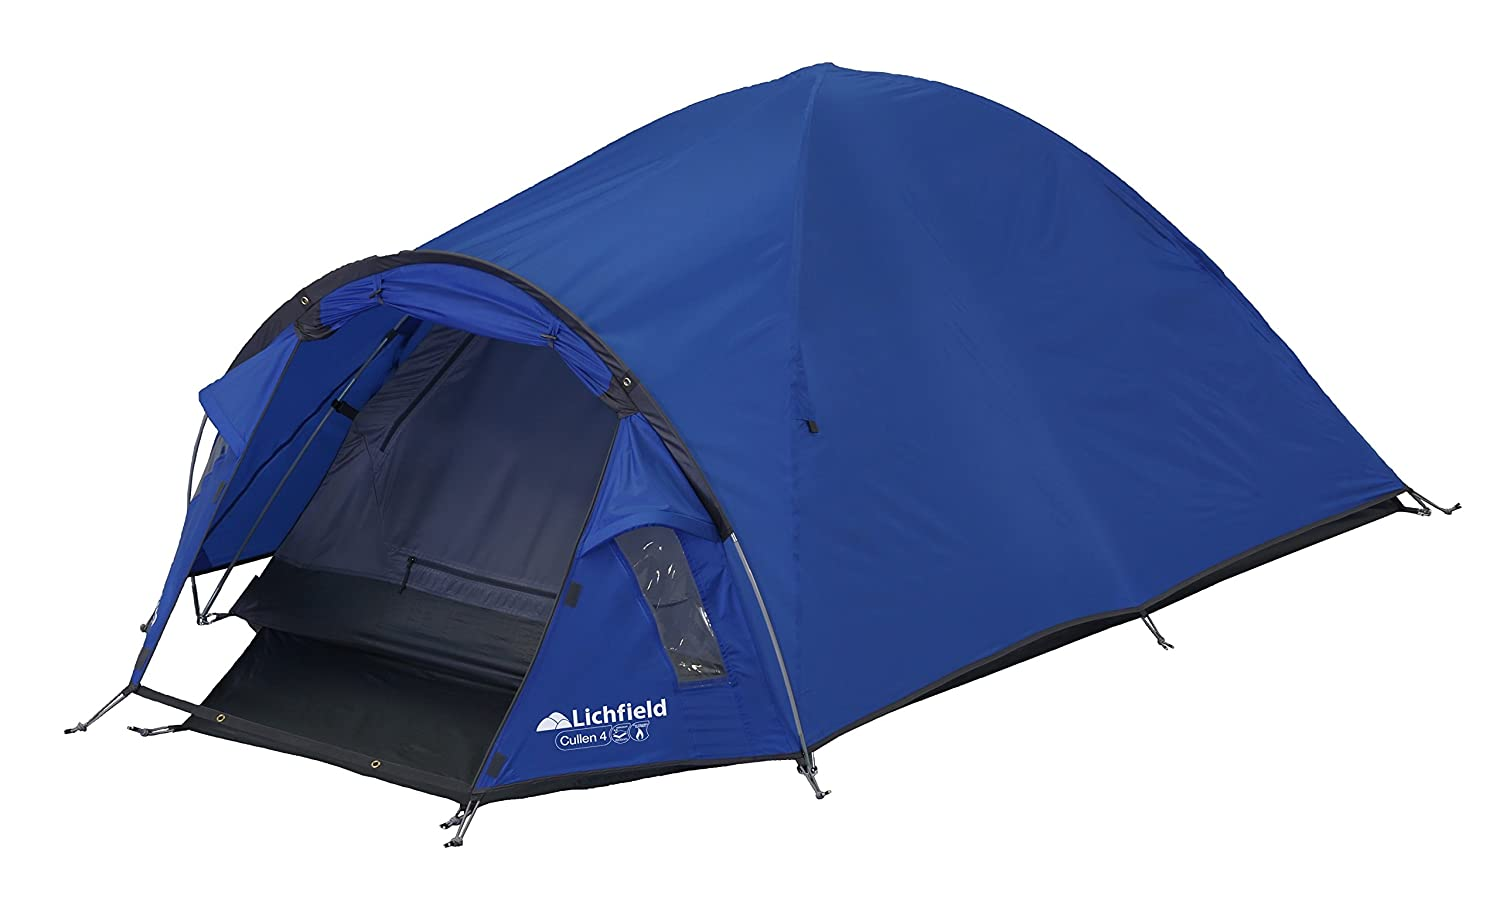 Lichfield Cullen Dome Tent Atlantic Blue 4 Amazon.co.uk Sports u0026 Outdoors  sc 1 st  Amazon UK & Lichfield Cullen Dome Tent Atlantic Blue 4: Amazon.co.uk: Sports ...